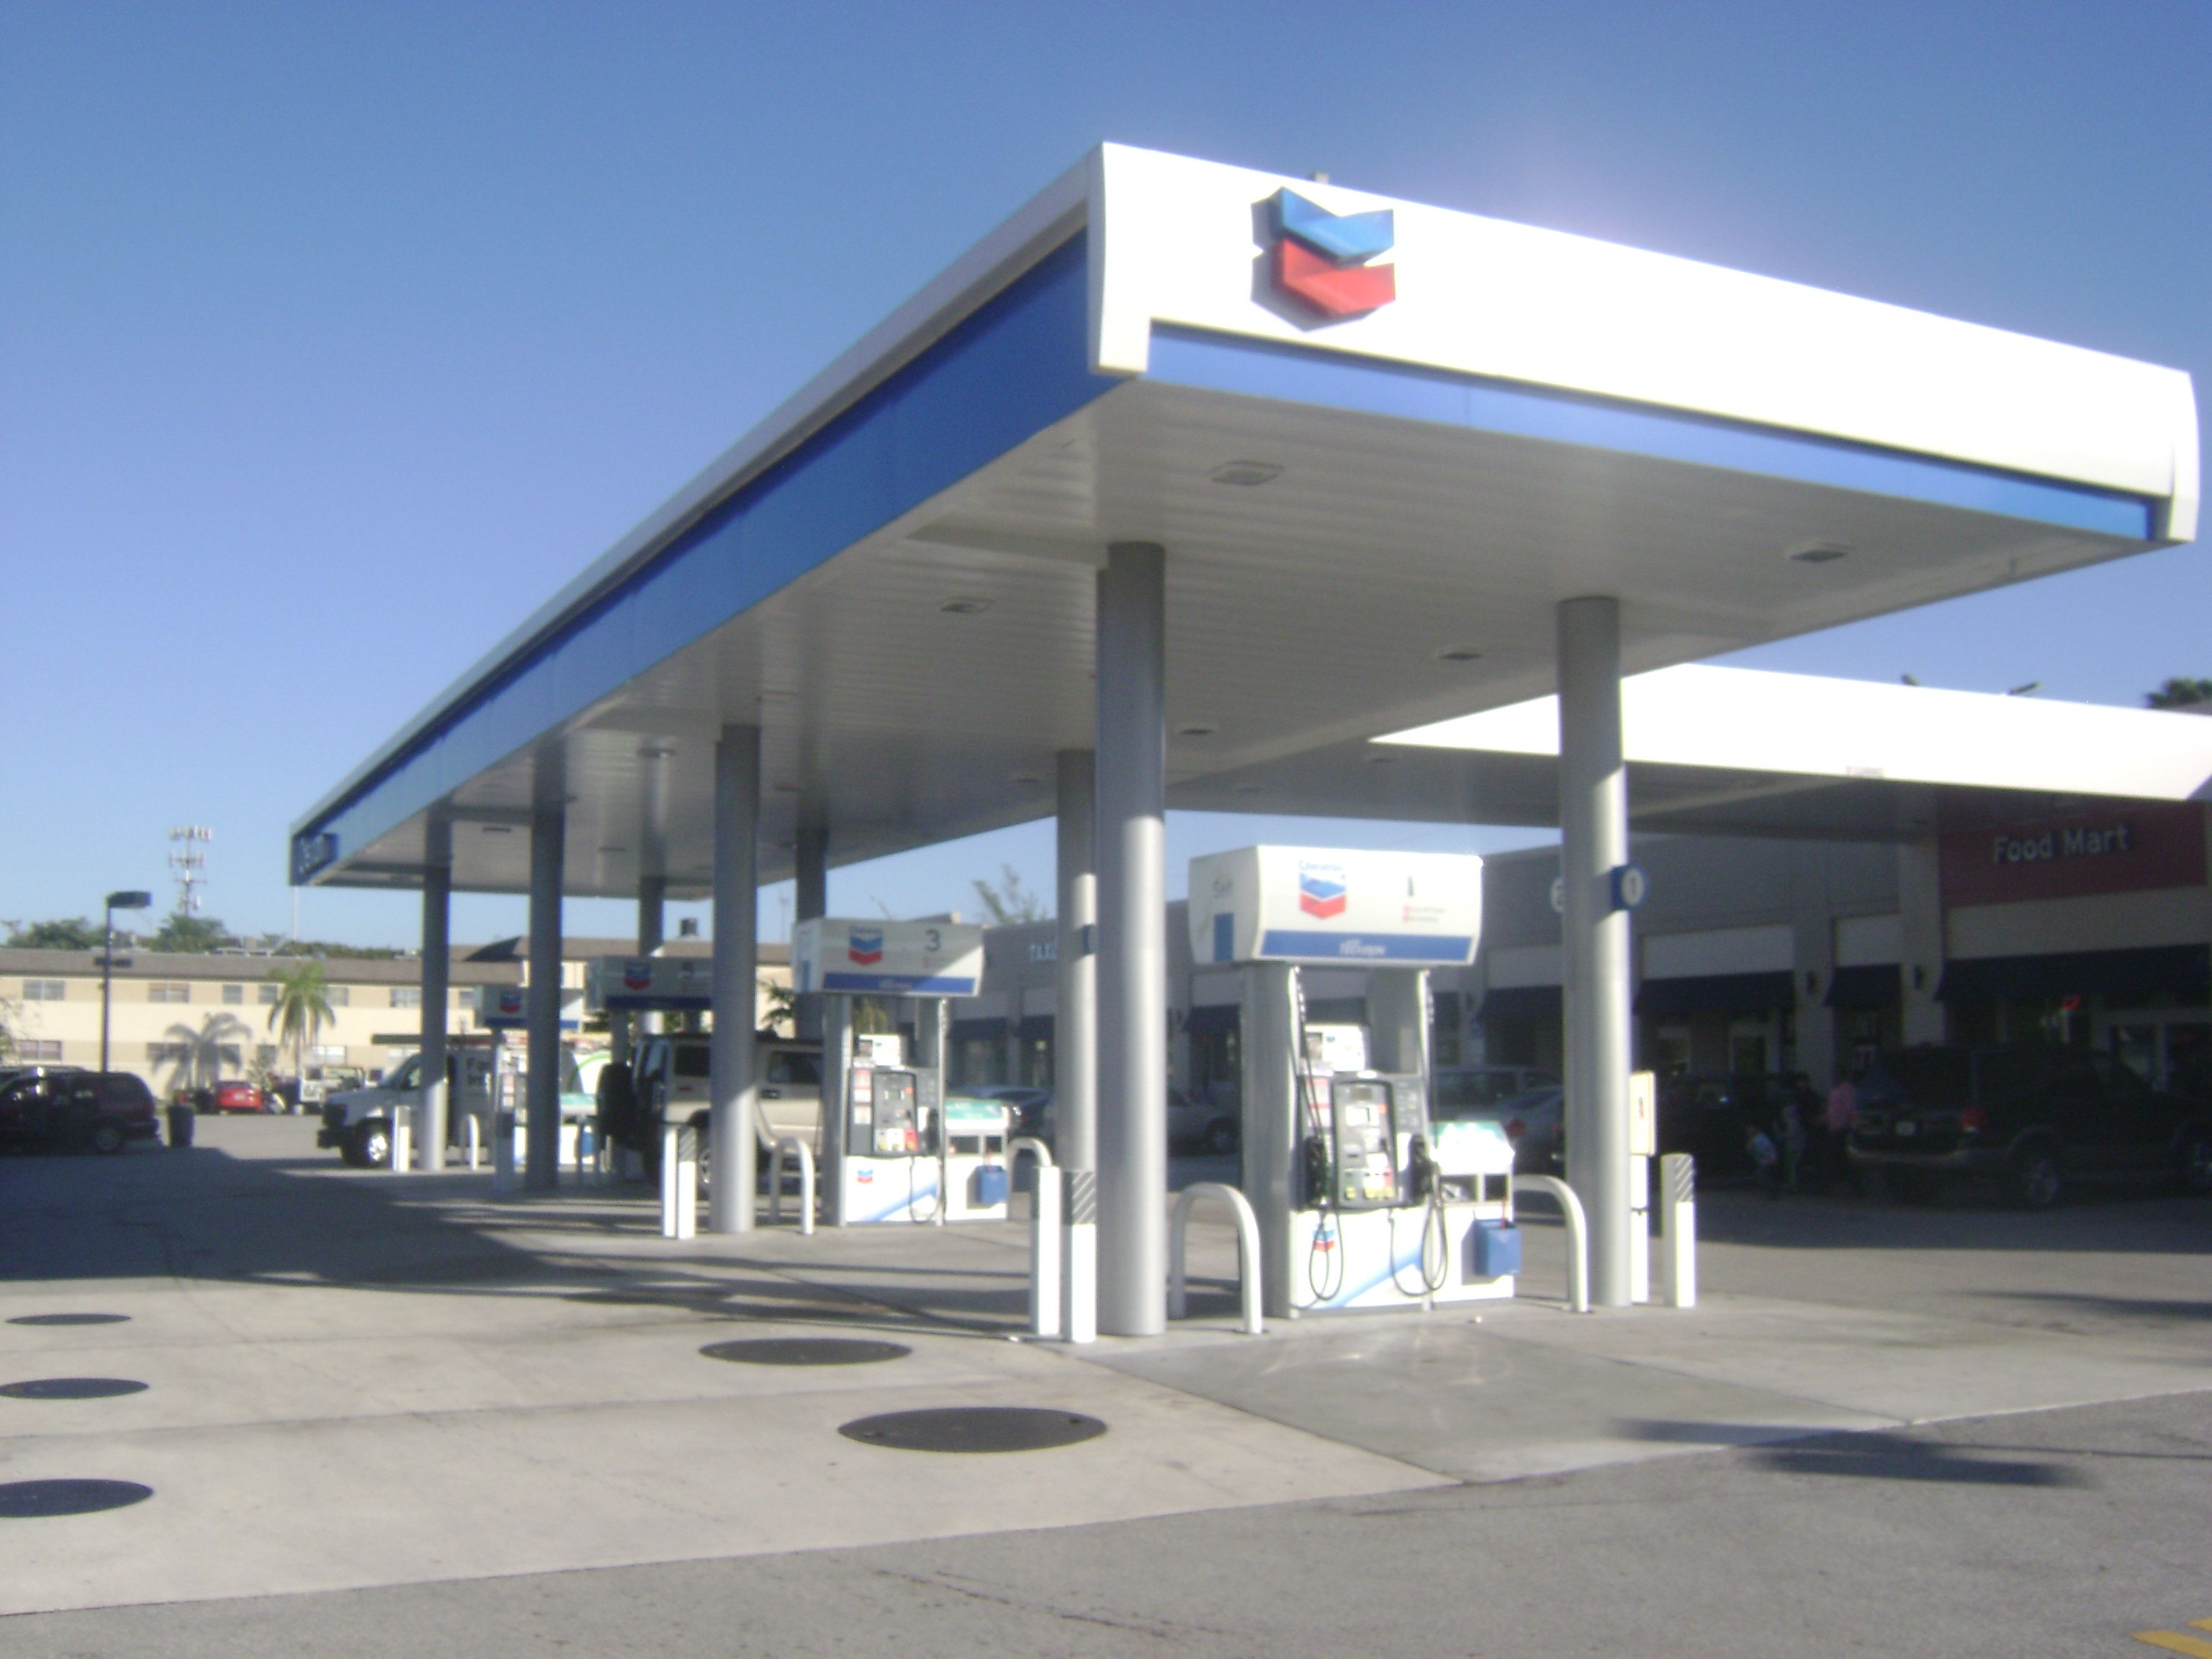 A chevron petrol station in the day there is also a food